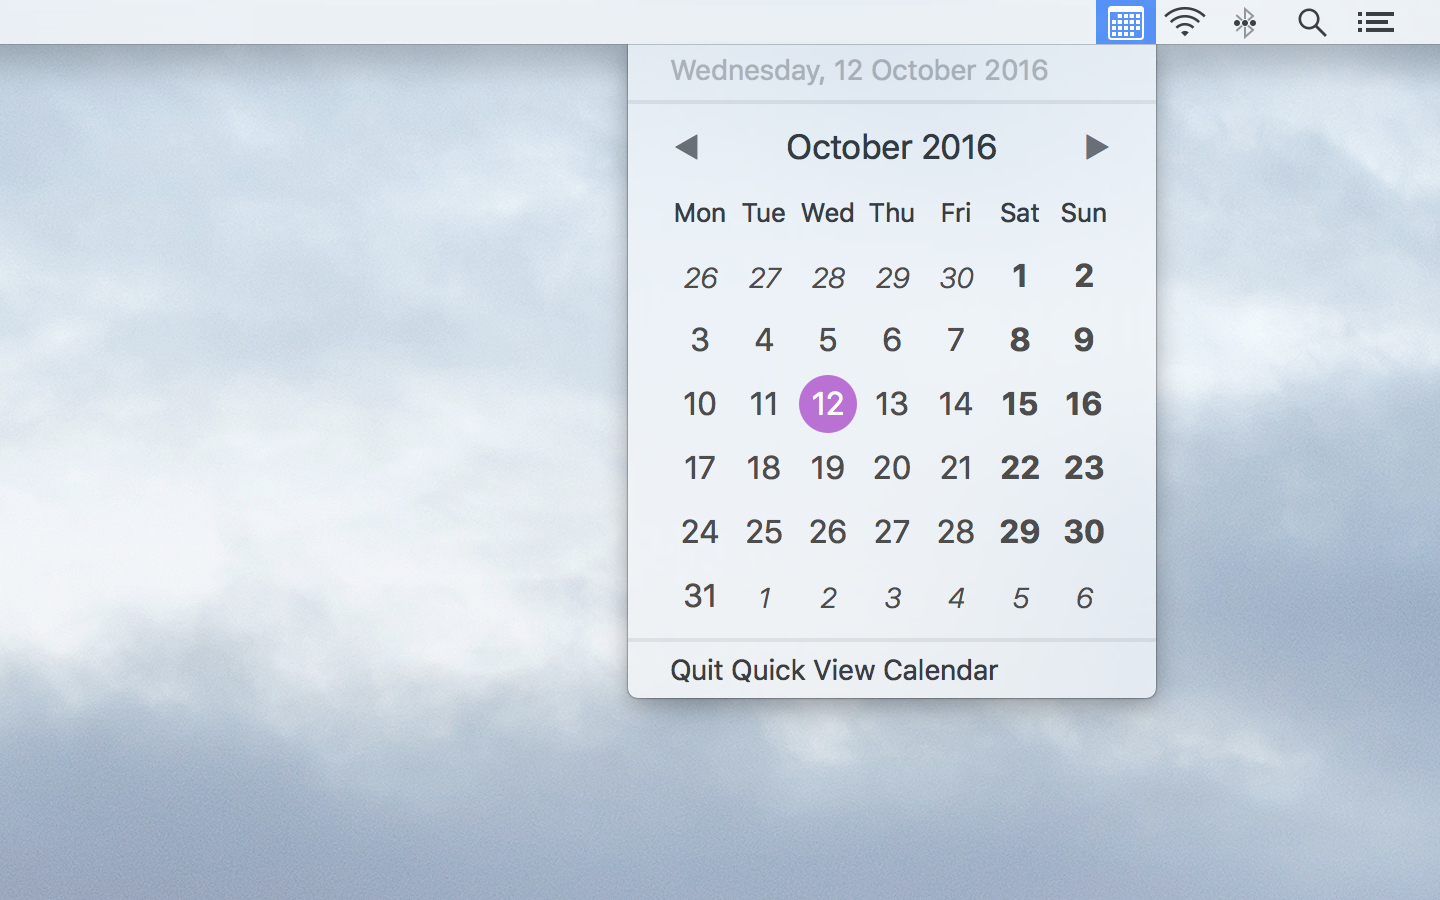 Quick View Calendar adapts to light menu bar mode